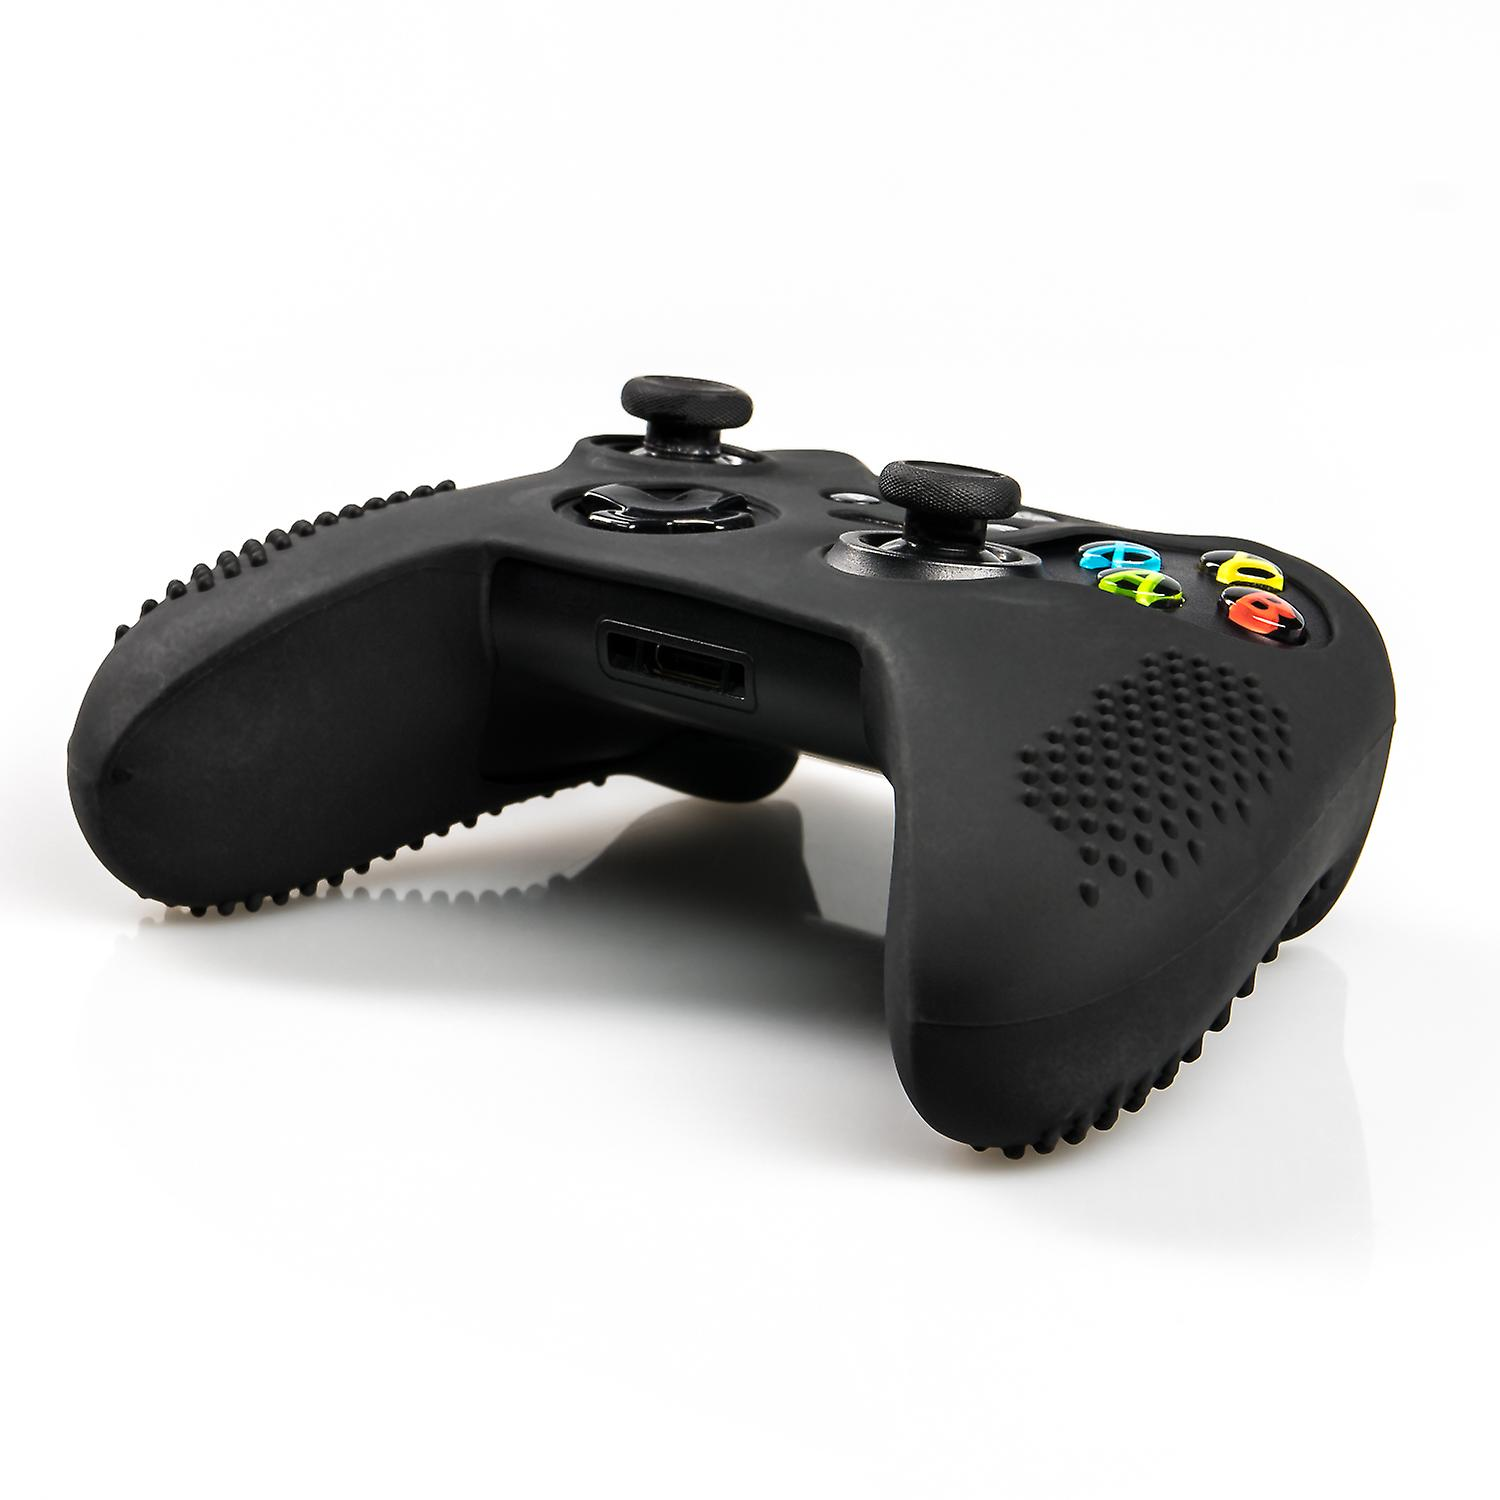 Studded silicone cover skin anti-slip Compatible for Xbox One x 1 Black